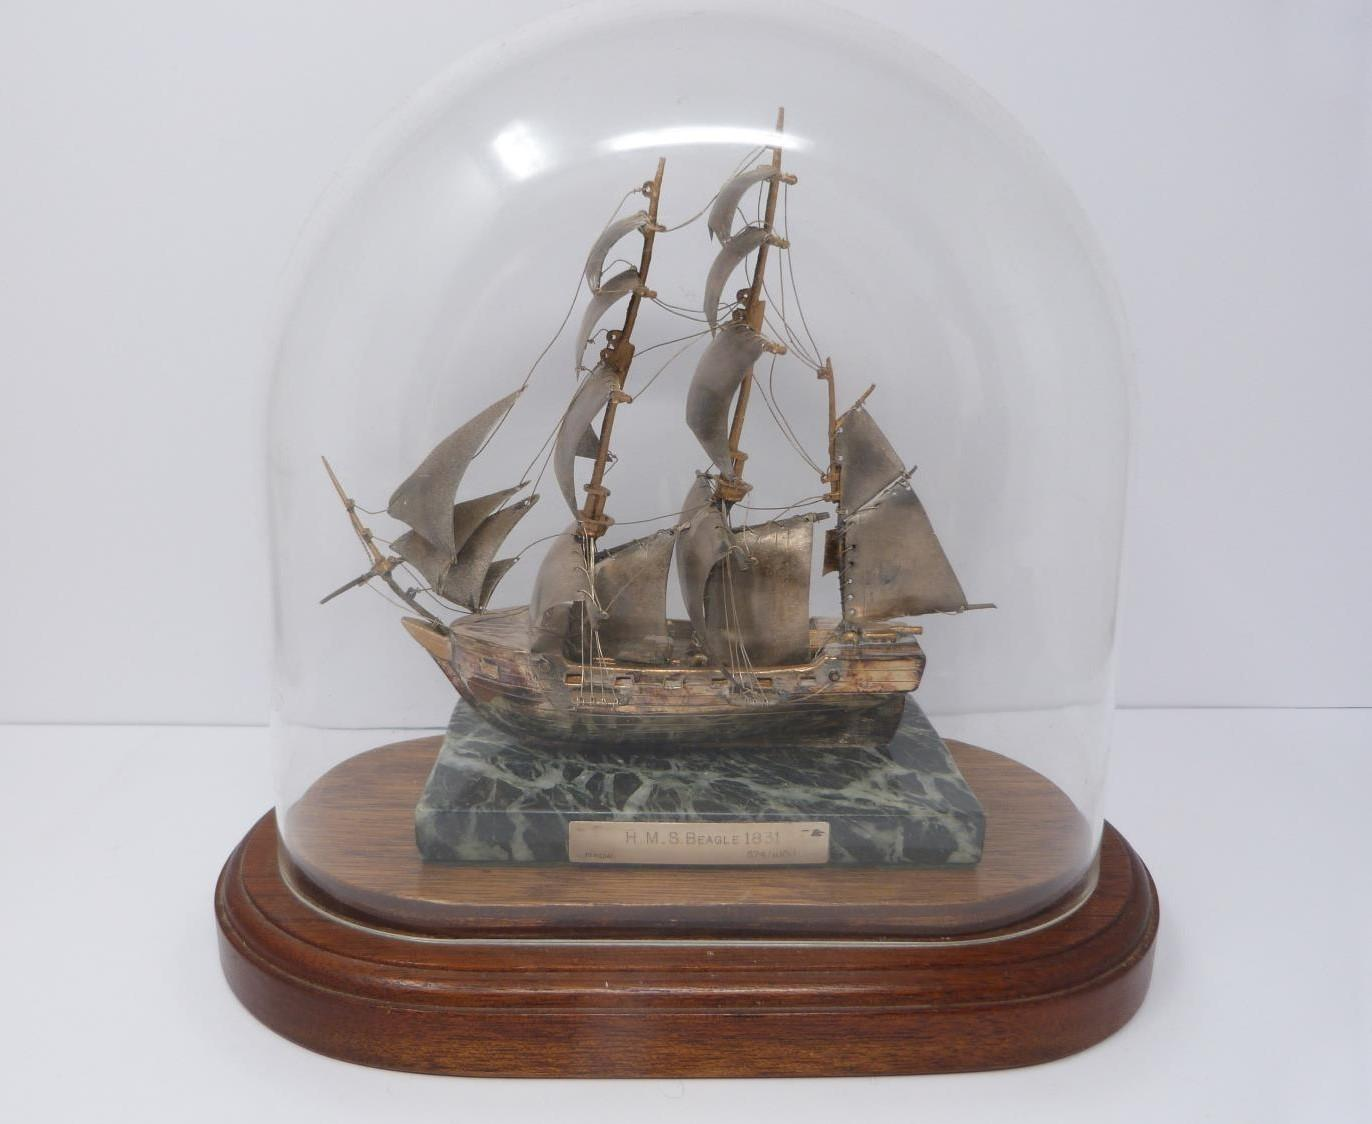 A silver model of the HMS Beagle 1831 in presentation case, 574/1000, mounted on alabaster base, A